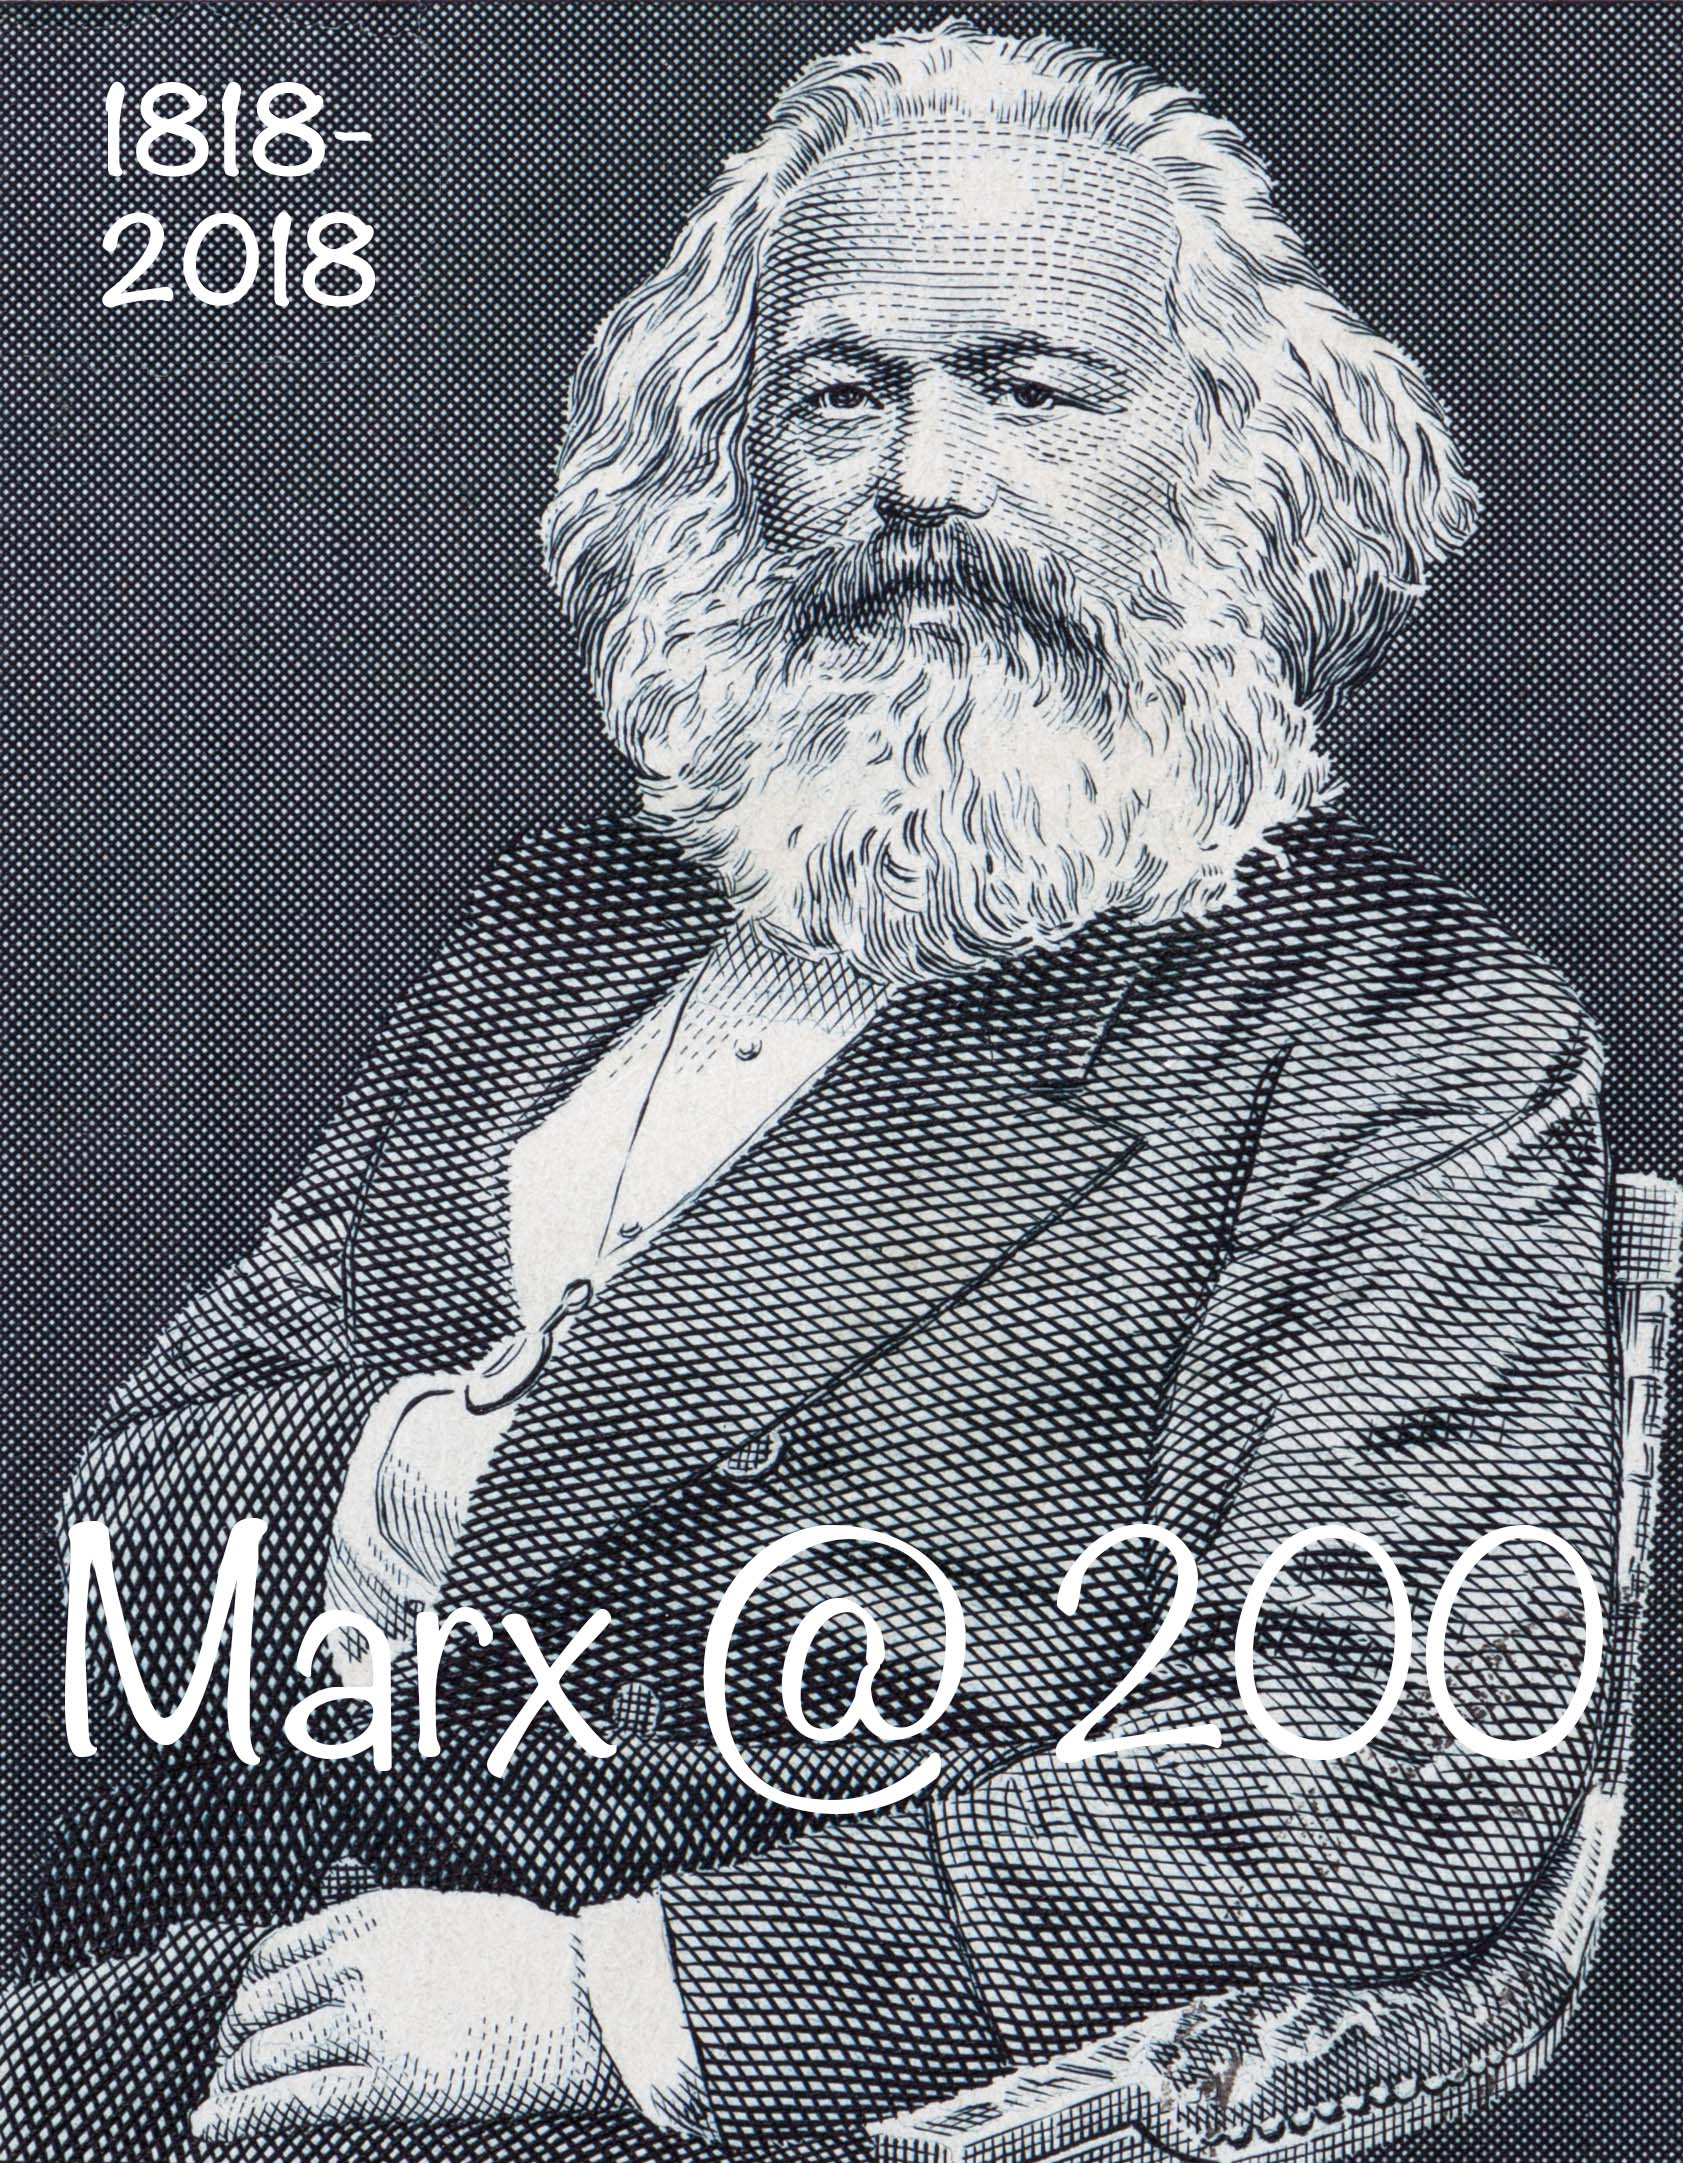 Karl Marx bicentenary 5 May 2018 200th birthday anniversary celebration